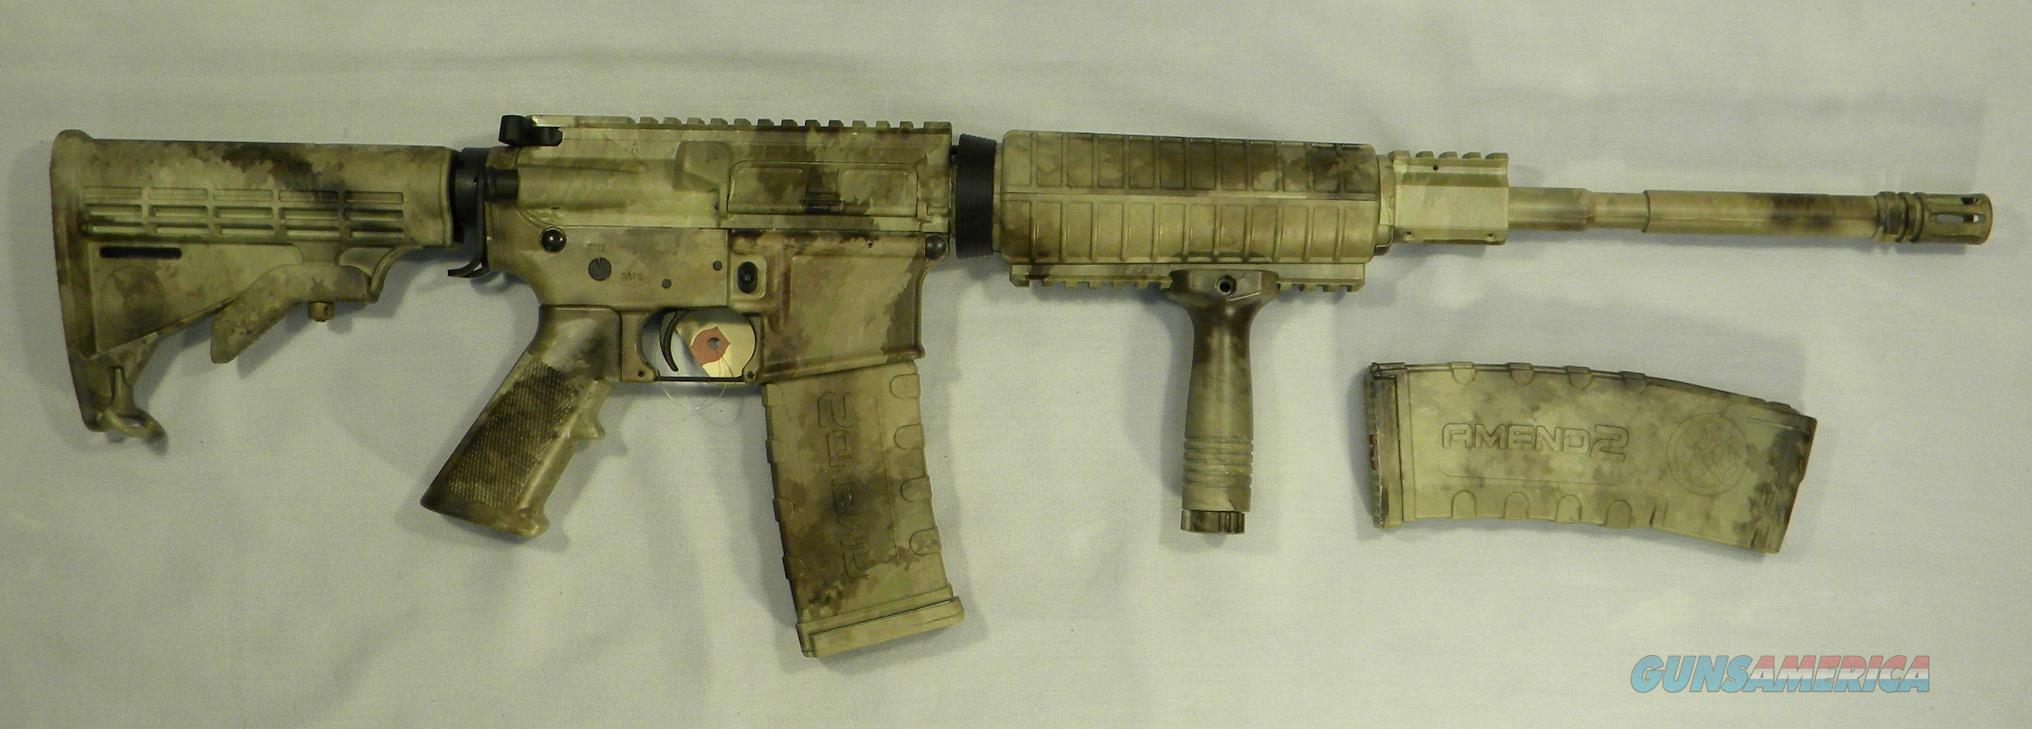 AR-15 Rifle, AOS Exclusive! LAR Grizzly-15 M4 Rifle In ''A-TACS'' Camo, 5.56 NATO/.223 Rem  Guns > Rifles > LAR/Grizzly Mfg. Co. Rifles